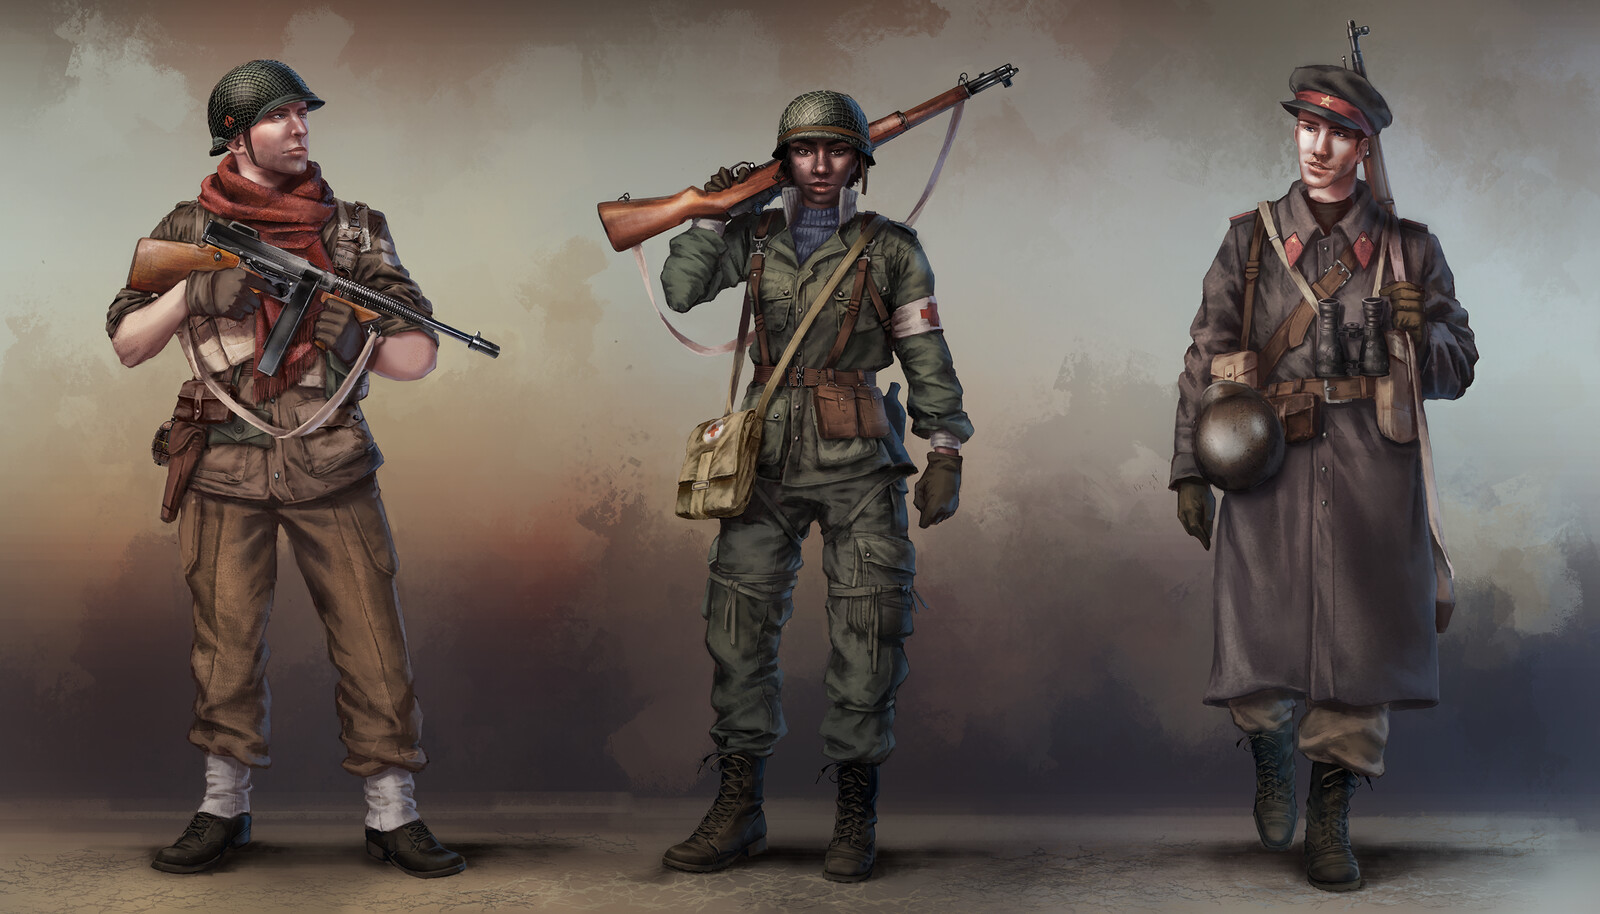 WW2 inspired character concepts - allied